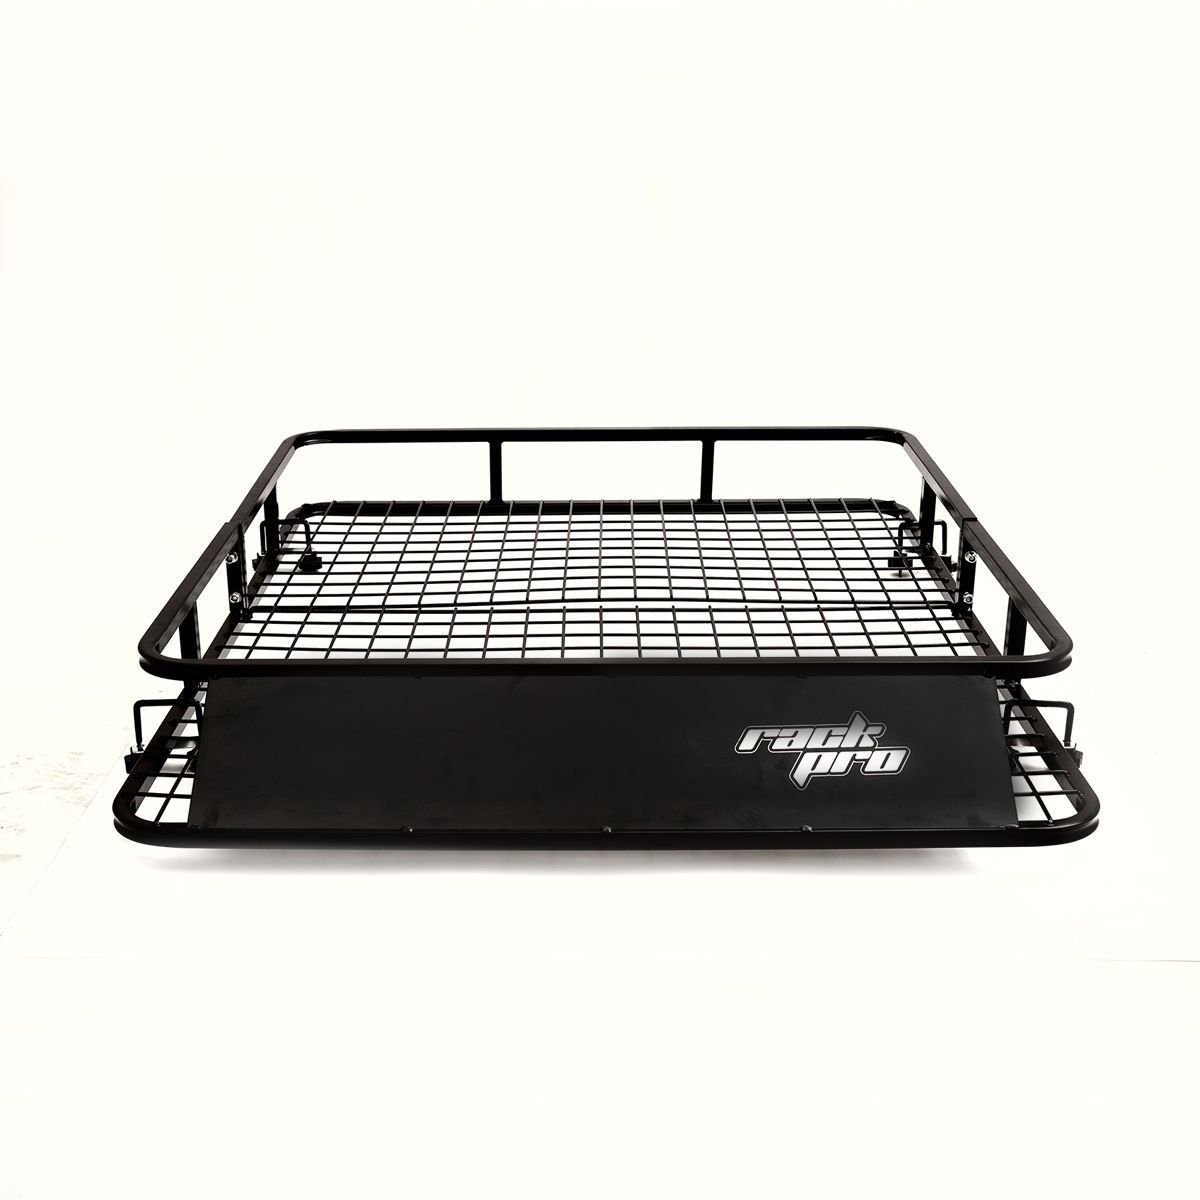 Universal Roof Mounted Cargo Rack Basket Car Top Luggage Carrier Cargo Holder Traveling 48'' X 40'' by Everyday Big Deal